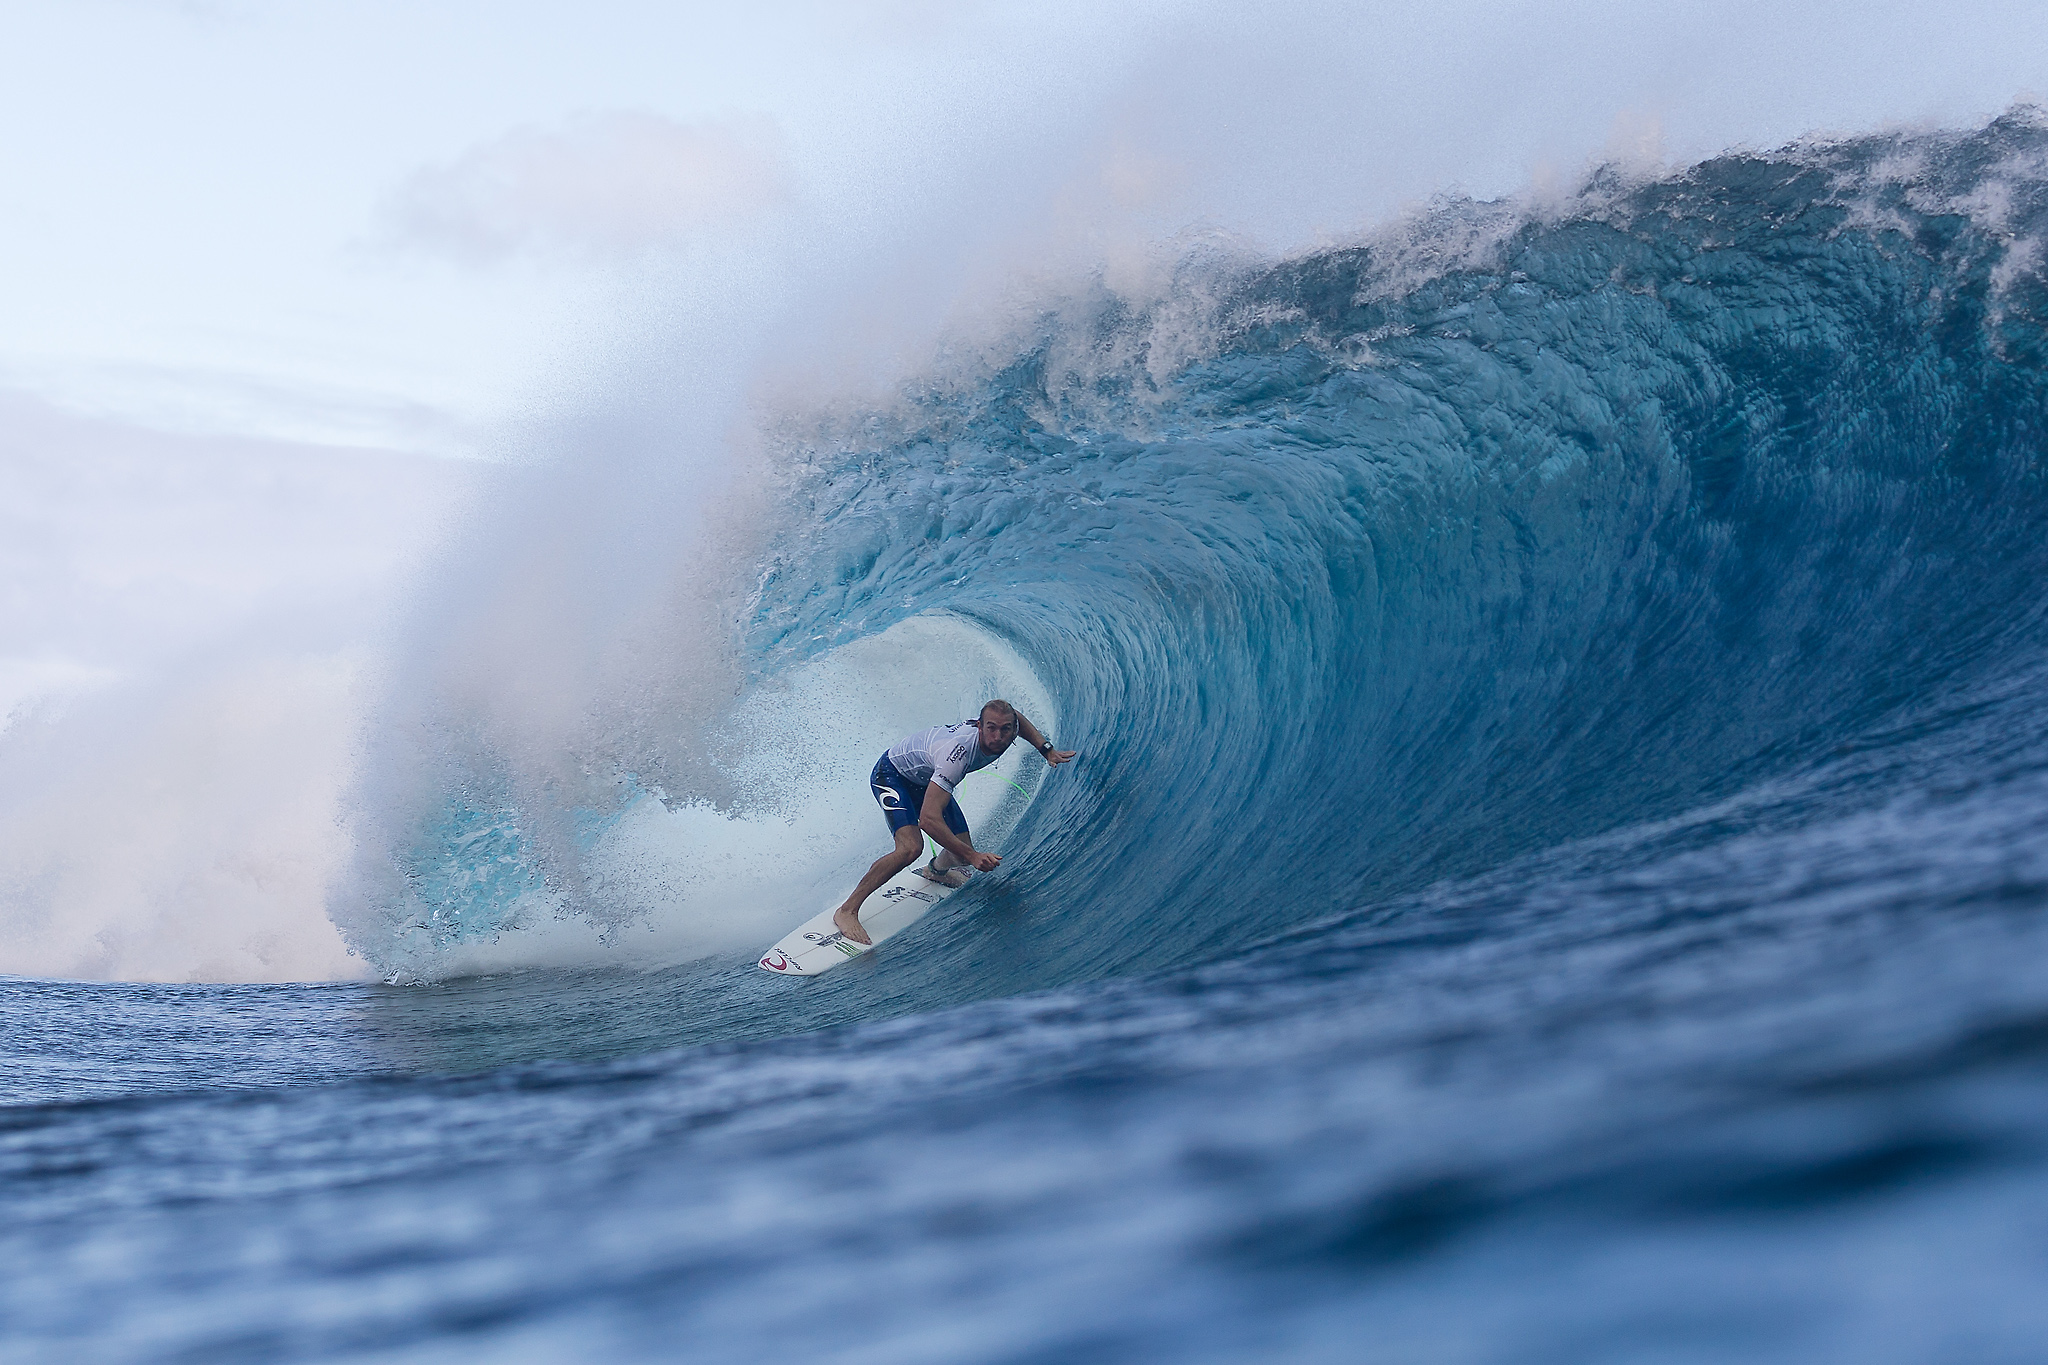 Owen Wright of Culburra Beach, New South Wales, Australia (pictured) winning in Round 4 of the Billabong Pro Tahiti with a heat total of 14.84 points (out of a possible 20.00) to advance in to the Quarter Finals at Teahupoo, Tahiti on 24 August 2015. IMAGE CREDIT: © WSL / Cestari PHOTOGRAPHER: Kelly Cestari SOCIAL MEDIA TAG: @wsl @KC80